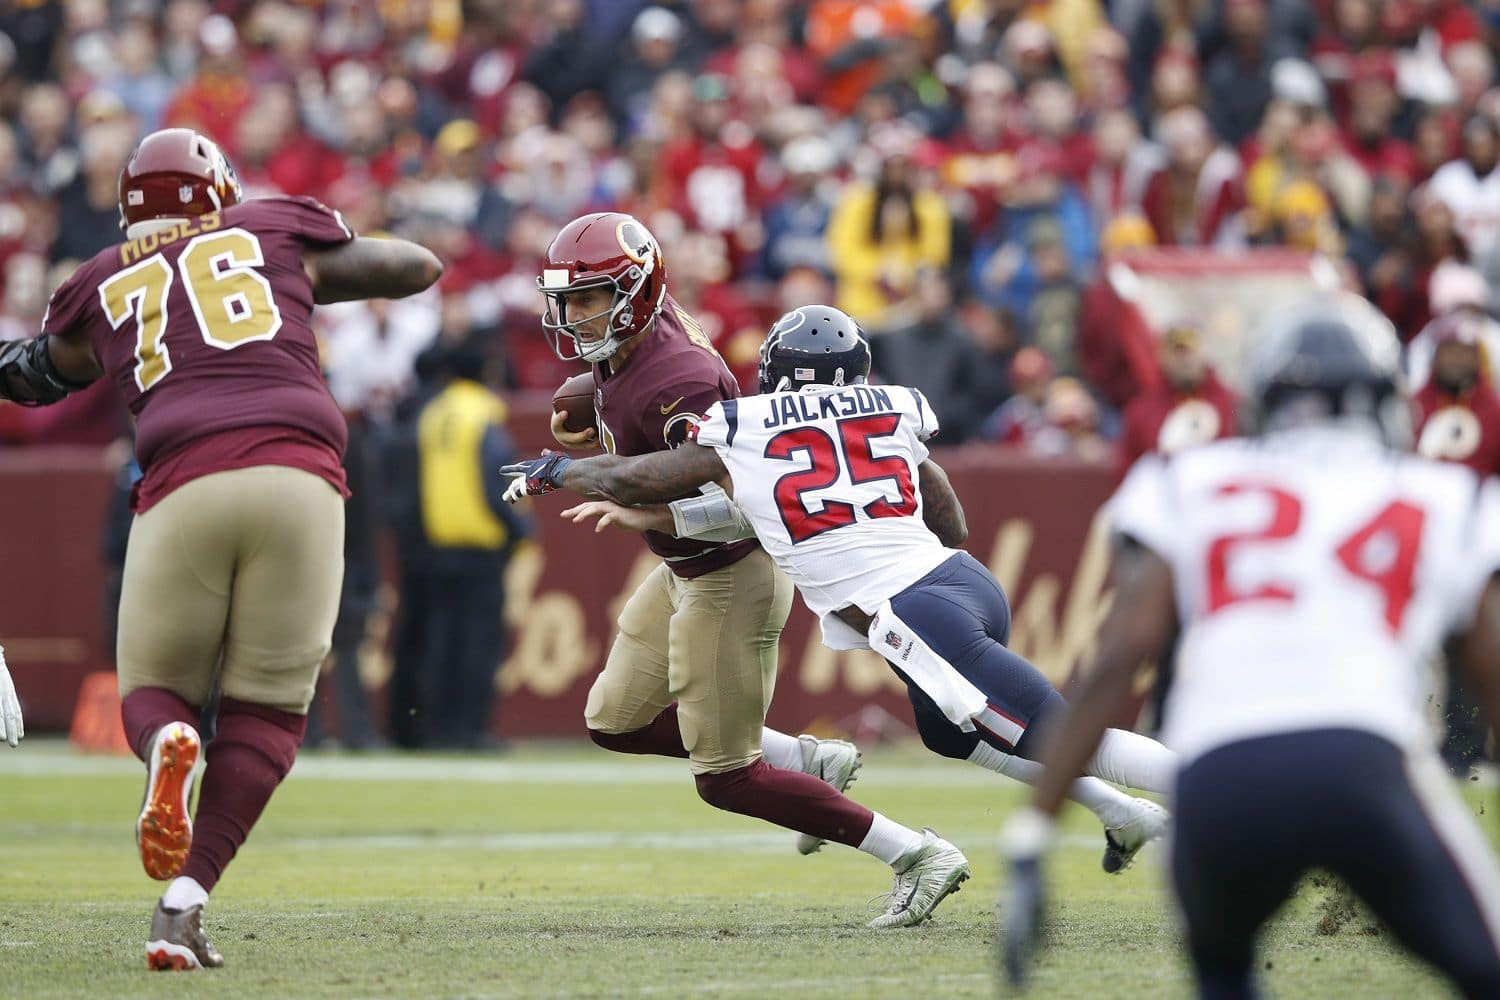 LANDOVER, MD - NOVEMBER 18: Alex Smith #11 of the Washington Redskins is sacked and injured by Kareem Jackson #25 of the Houston Texans in the third quarter of the game at FedExField on November 18, 2018 in Landover, Maryland. (Photo by Joe Robbins/Getty Images)